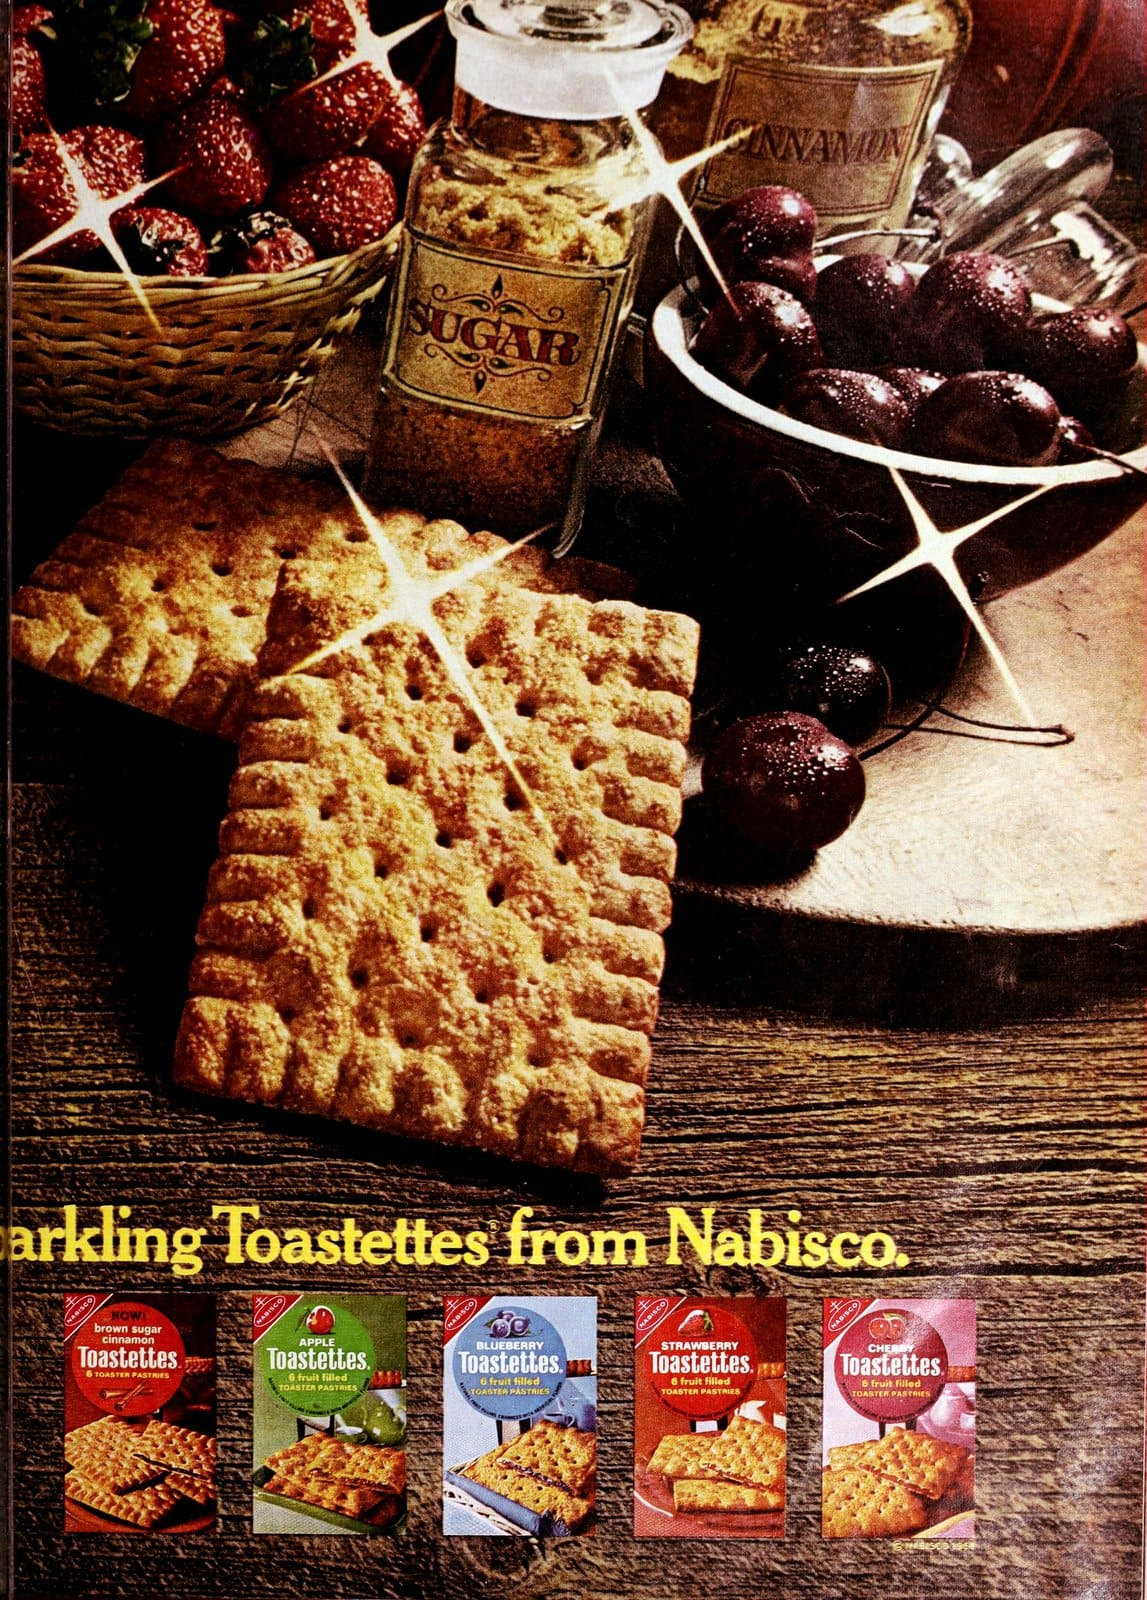 Vintage Nabisco Toastettes from the late 1960s (1)